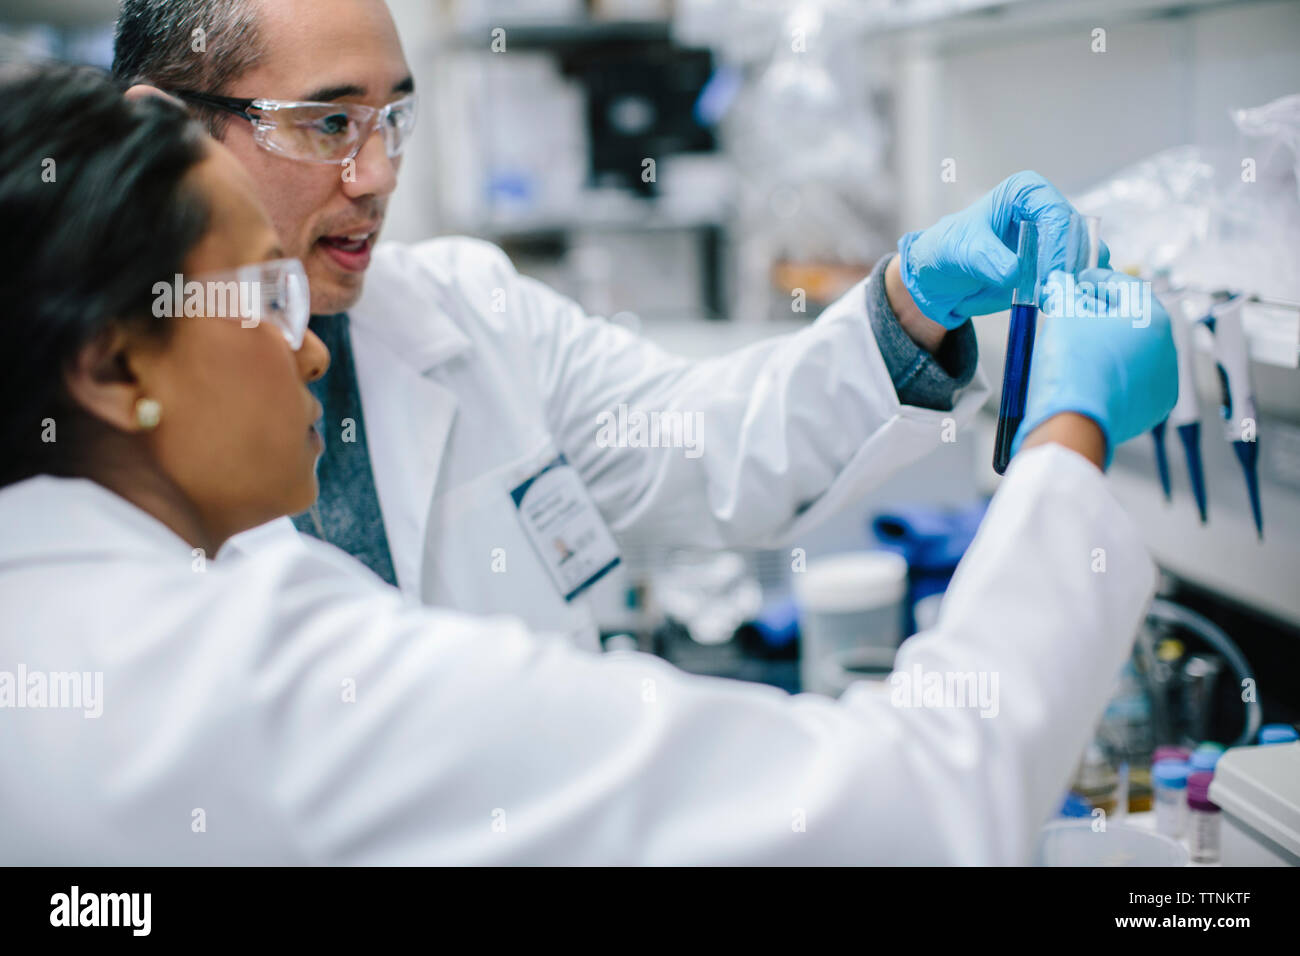 Doctors examining test tubes in laboratory Stock Photo